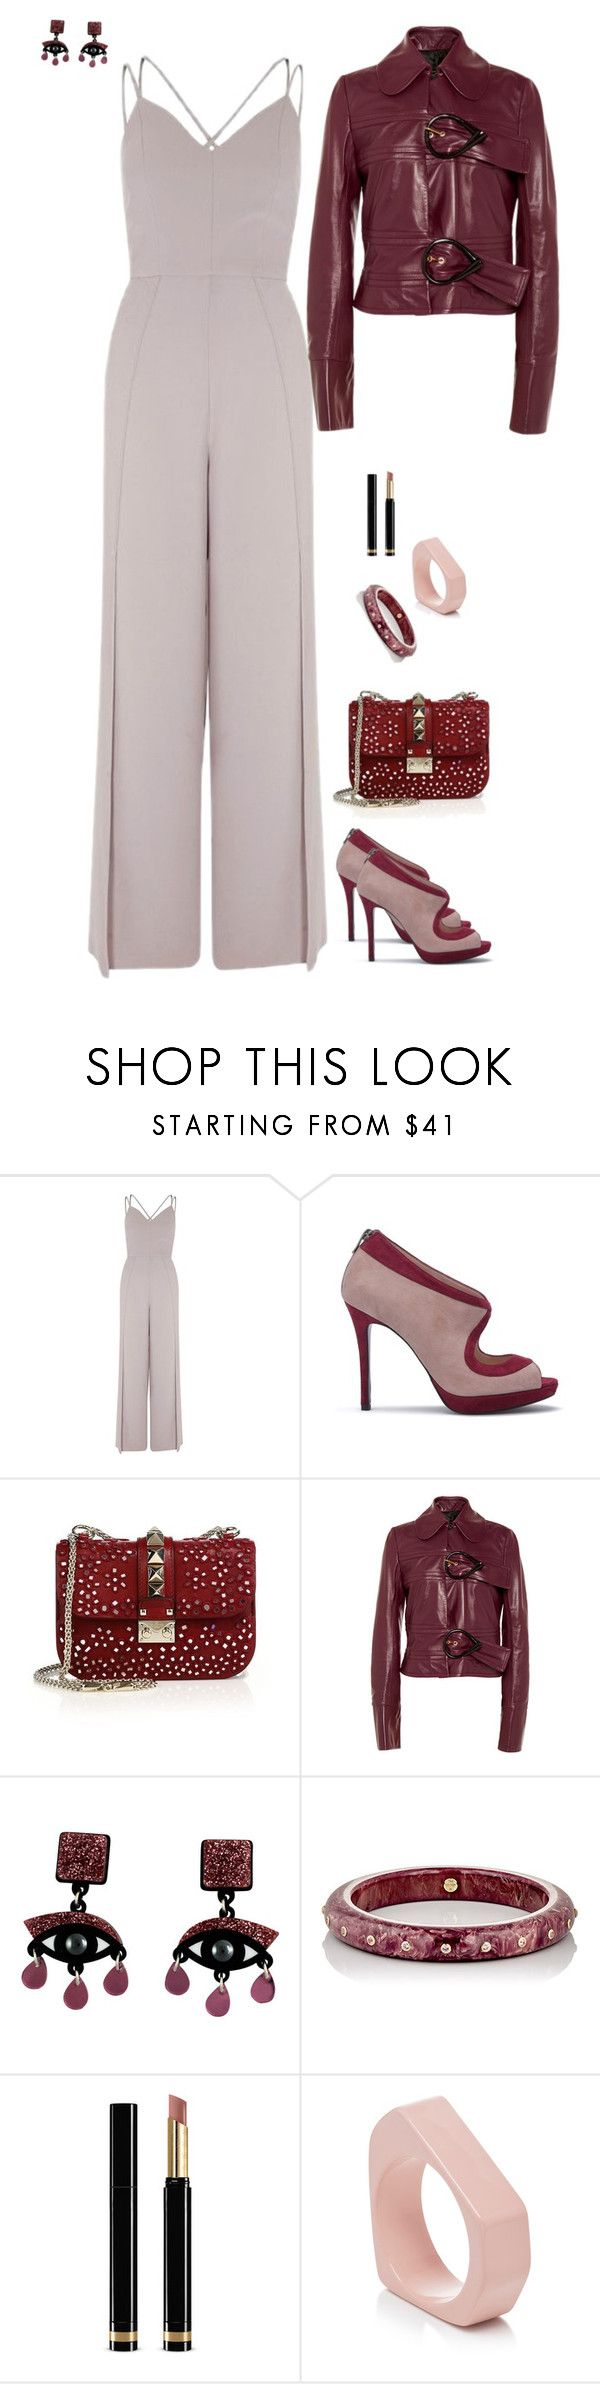 """""""Aderson."""" by srtagraham ❤ liked on Polyvore featuring River Island, Valentino, J.W. Anderson, Jennifer Loiselle, Mark Davis, Gucci and Marni"""